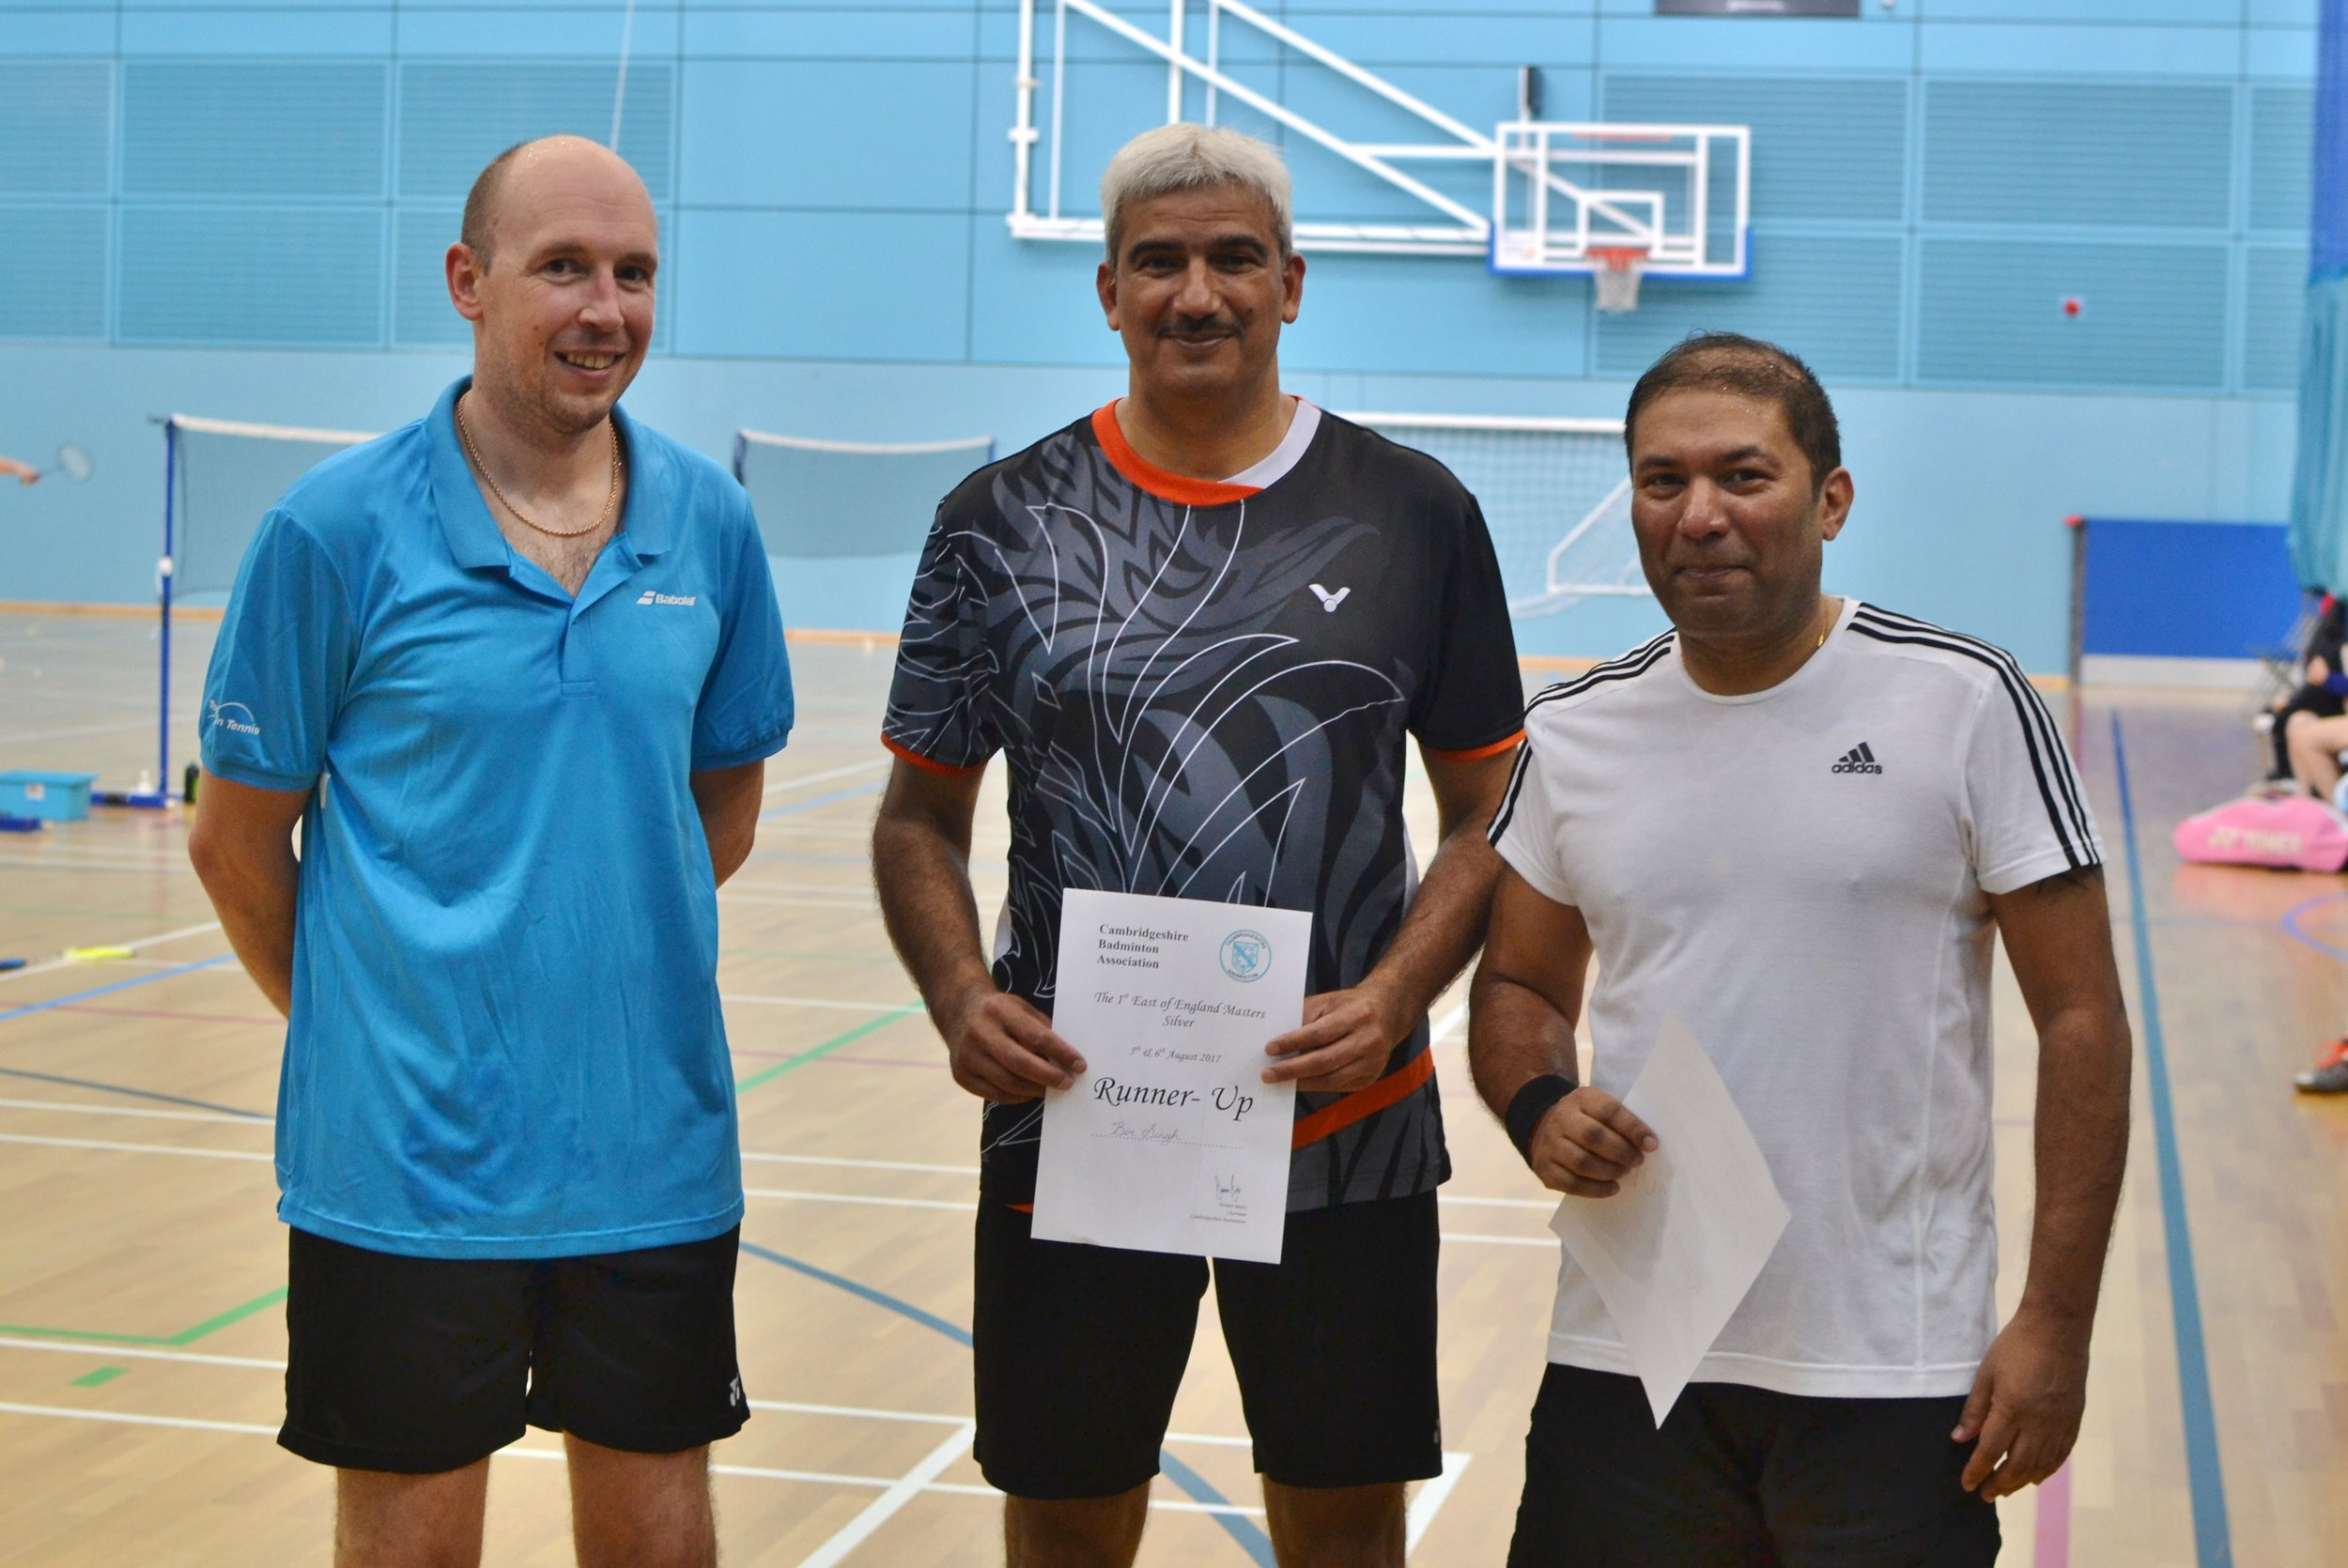 MD Masters O45 runners up: Bir Singh and Bhanu Sisupalan